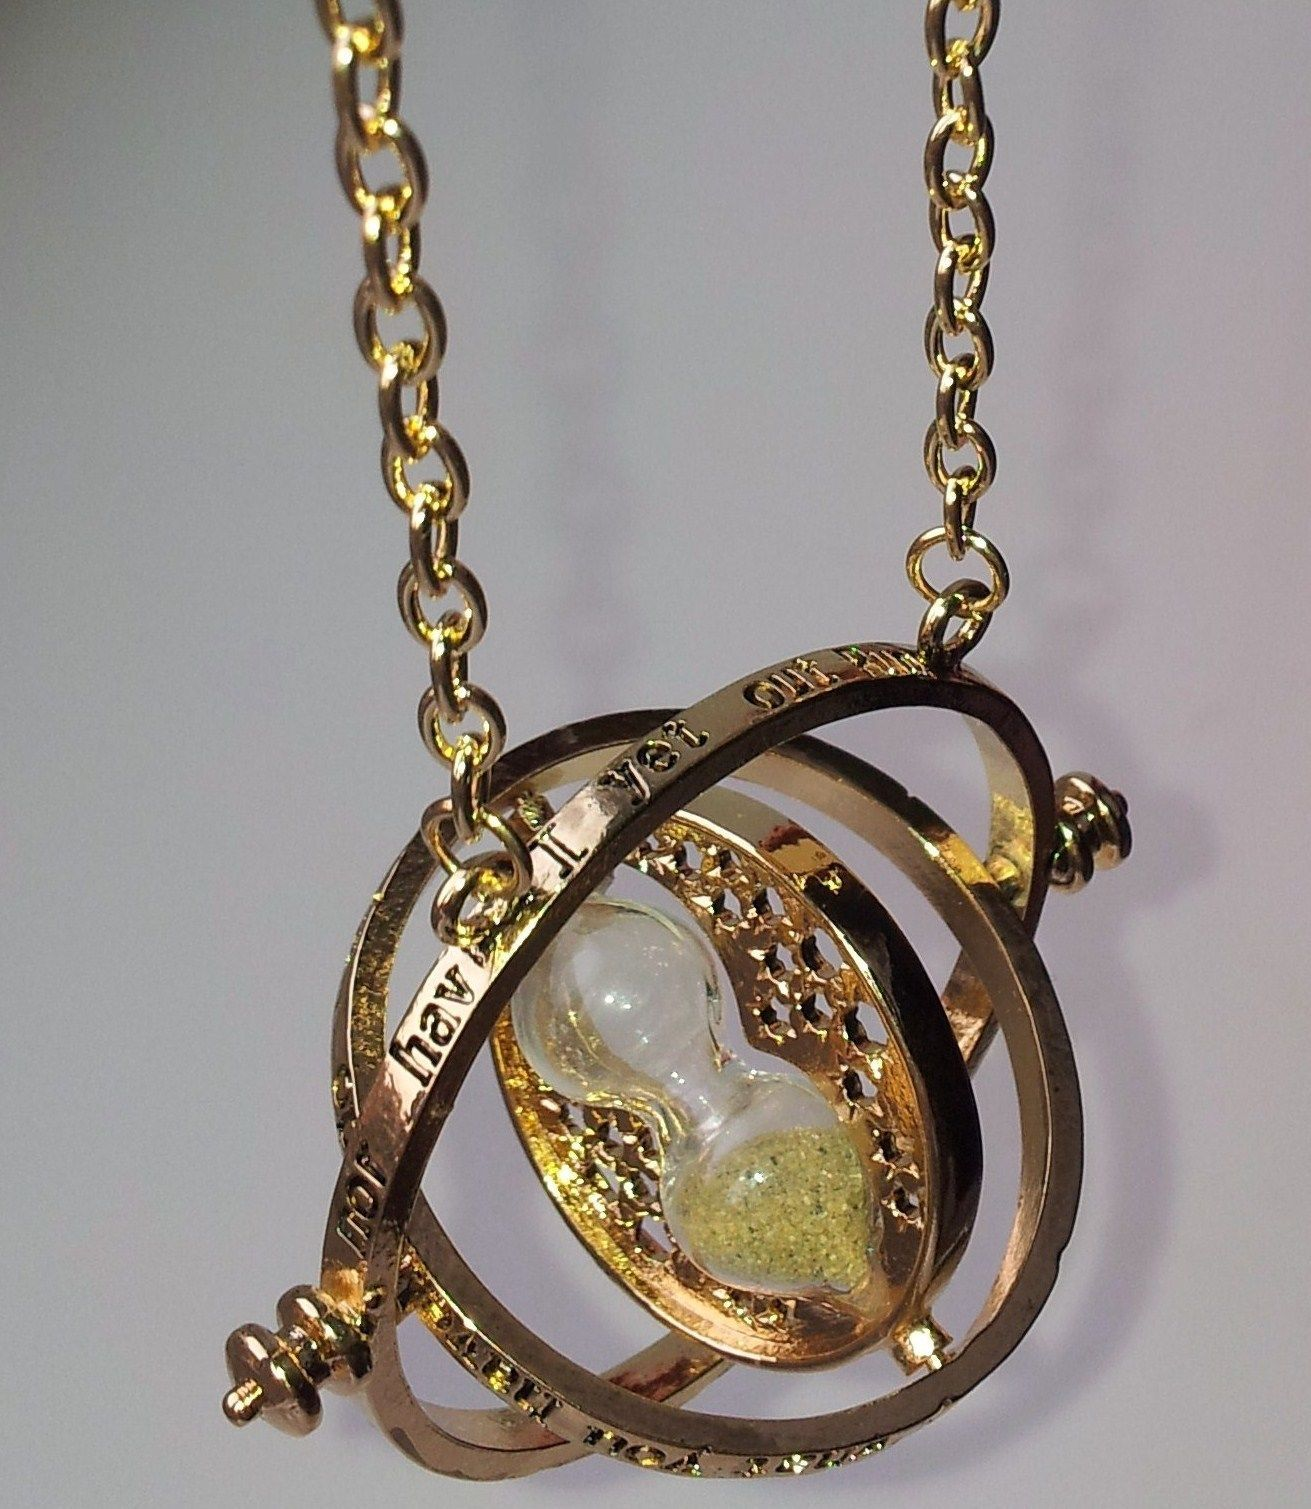 Beautiful gold timeturner necklace hermione granger